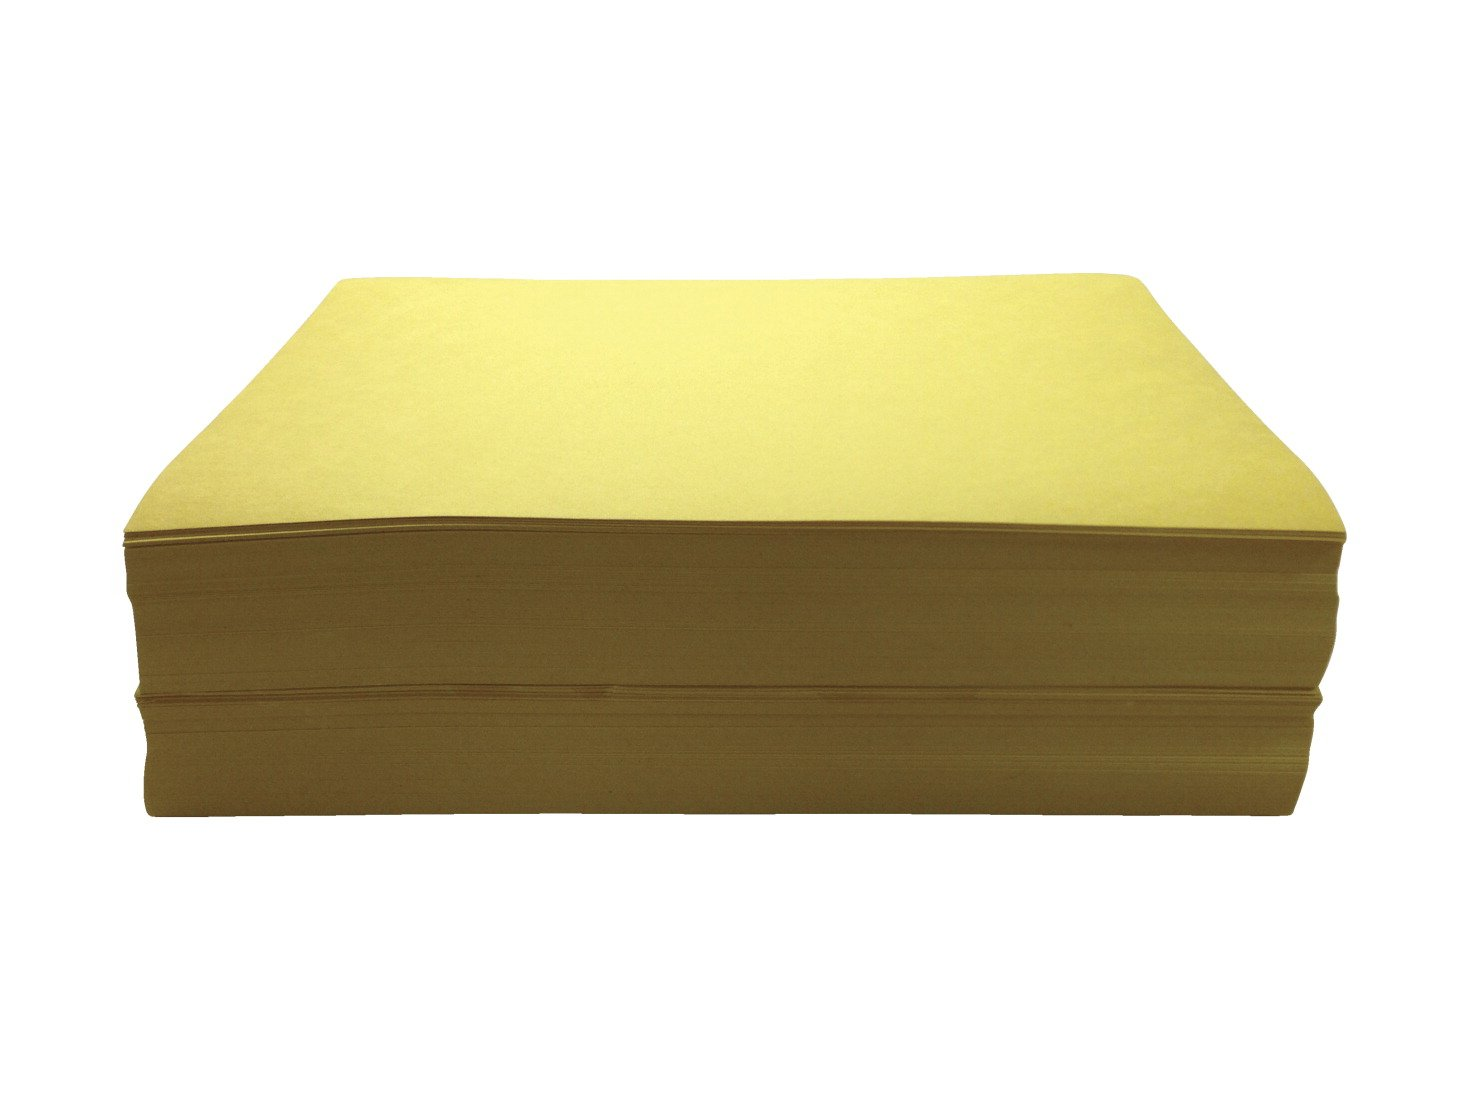 Childcraft Construction Paper, 9 x 12 Inches, Yellow, Pack of 500